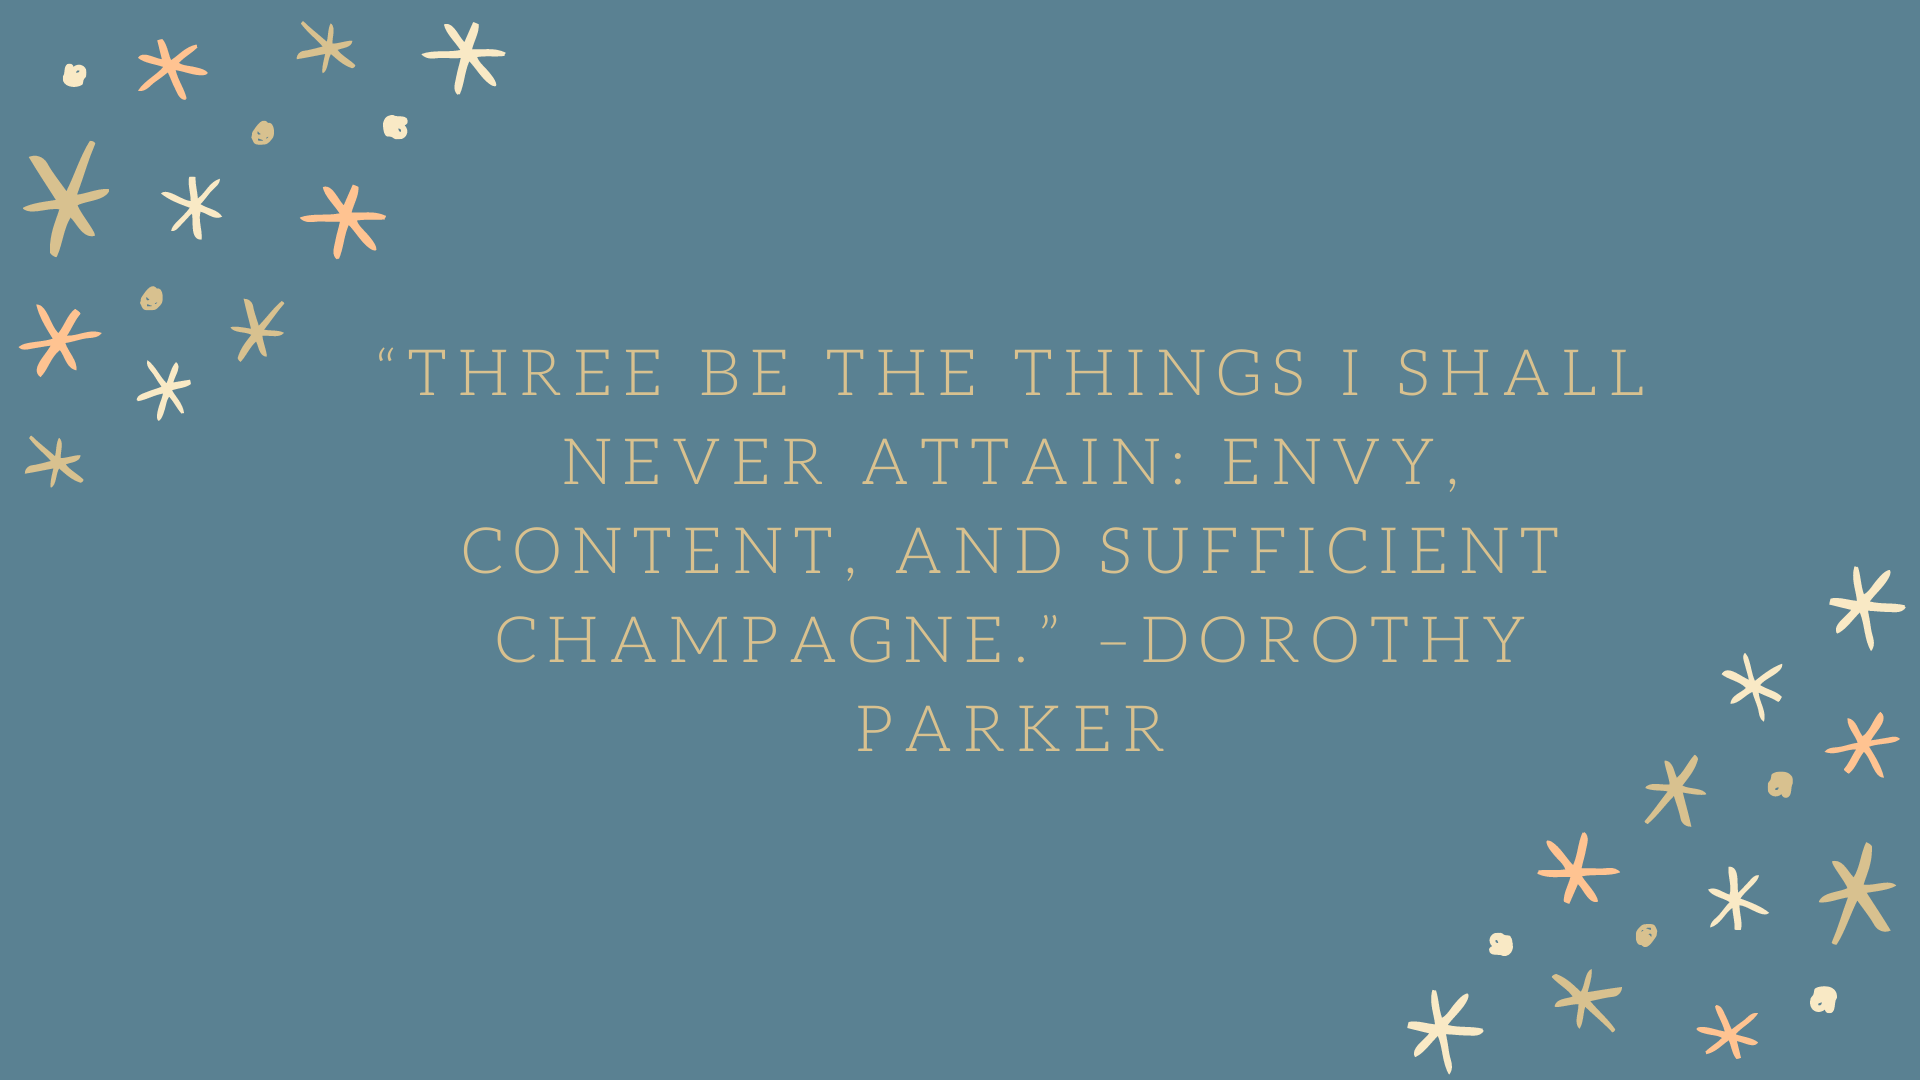 """Three be the things I shall never attain: envy, content, and sufficient champagne."" –Dorothy Parker"